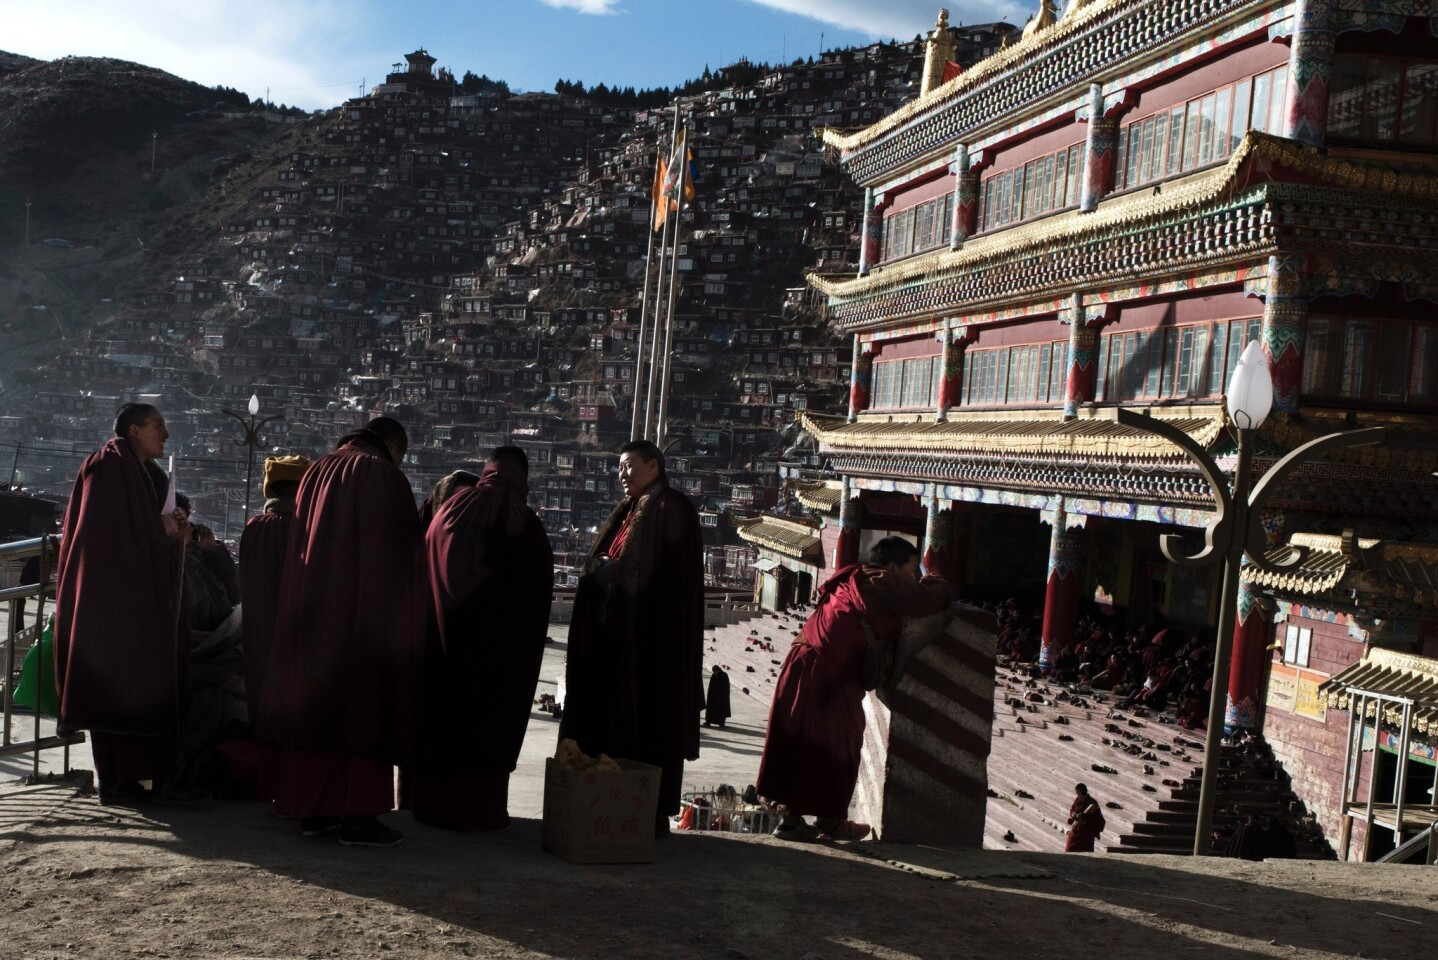 Buddhist nuns gather at the Larung Gar Buddhist Institute, where up to 40,000 monks and nuns are in residence for parts of the year. A notice from local officials began circulating in recent months saying that Larung Gar's population must be reduced to no more than 5,000 residents by Sept. 30.